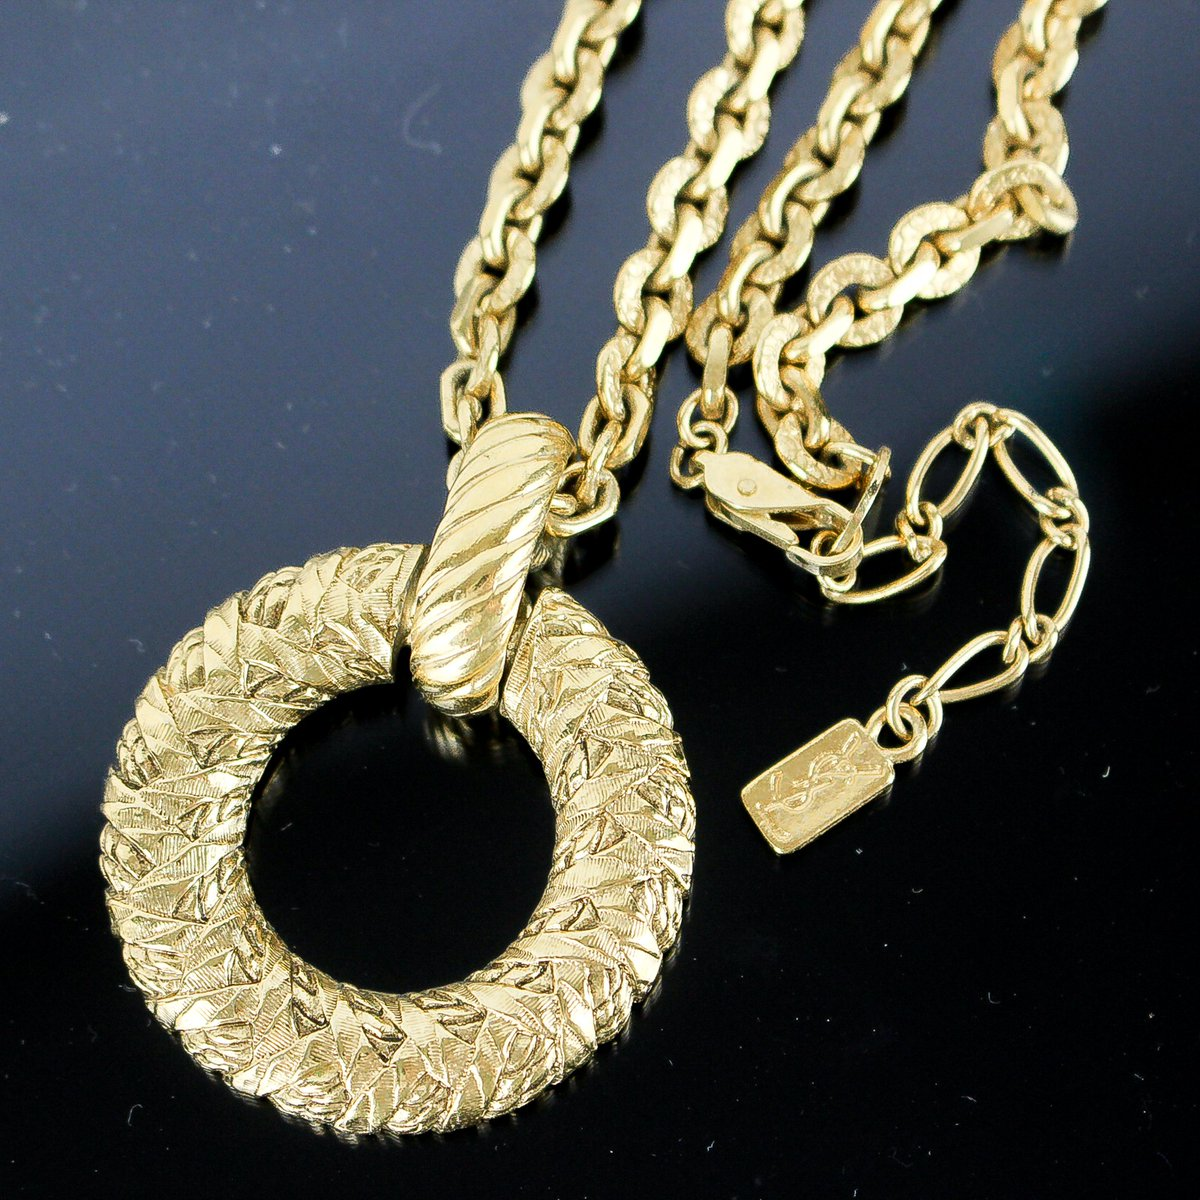 How would you coordinate it with your outfit?😃❓❓❓ YVES SAINT LAURENT YSL Circle Chain Necklace Pendant Gold Plated  Authentic verified. Free shipping worldwide.  Click on @brand_tcr for store link. Please search by this SKU:  e021010061  #ysl #followme  Follow me😆💕 https://t.co/ItsxNGa73e